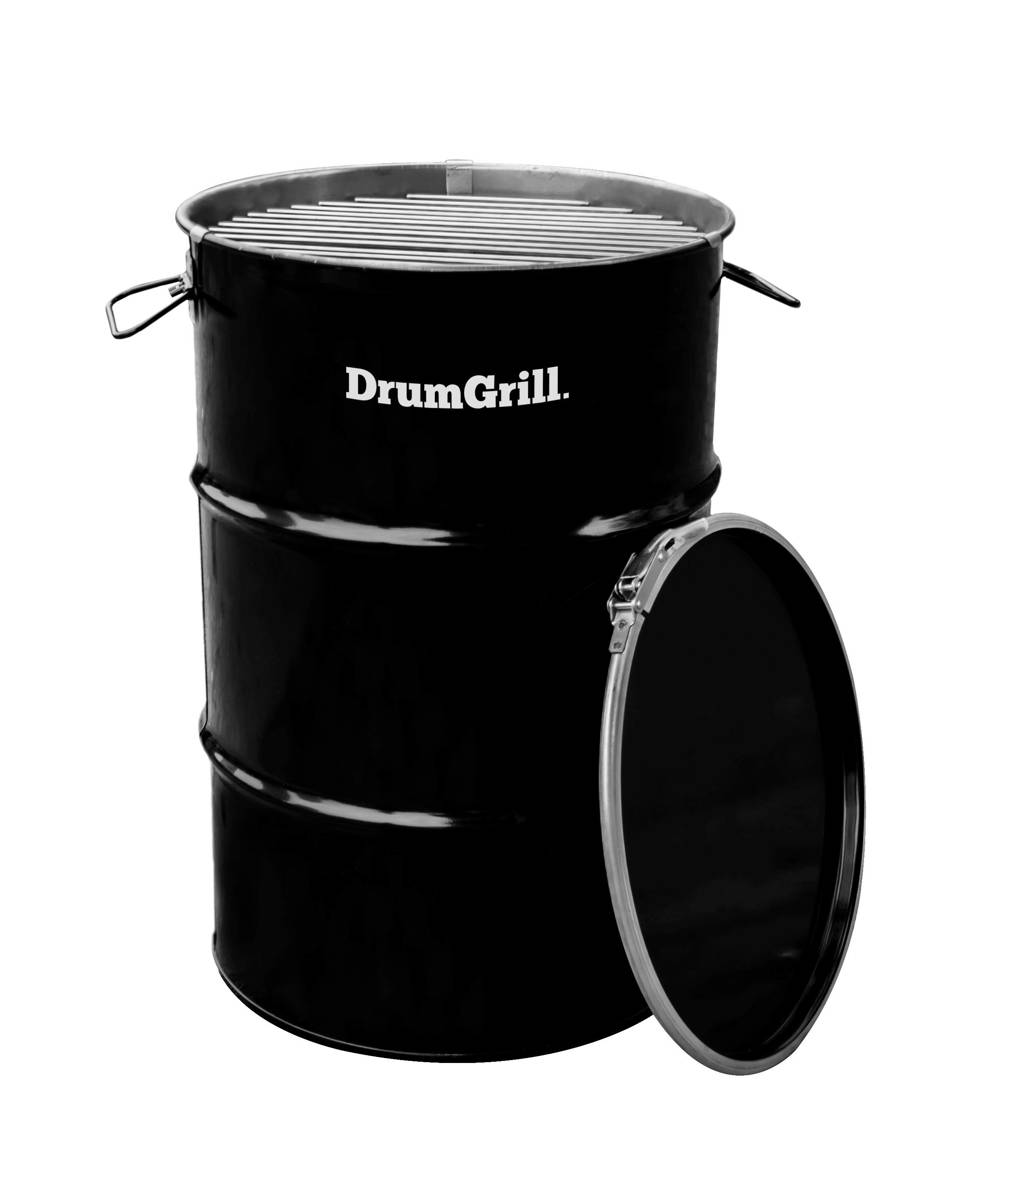 Drumgrill Drumgrill small houtskoolbarbecue